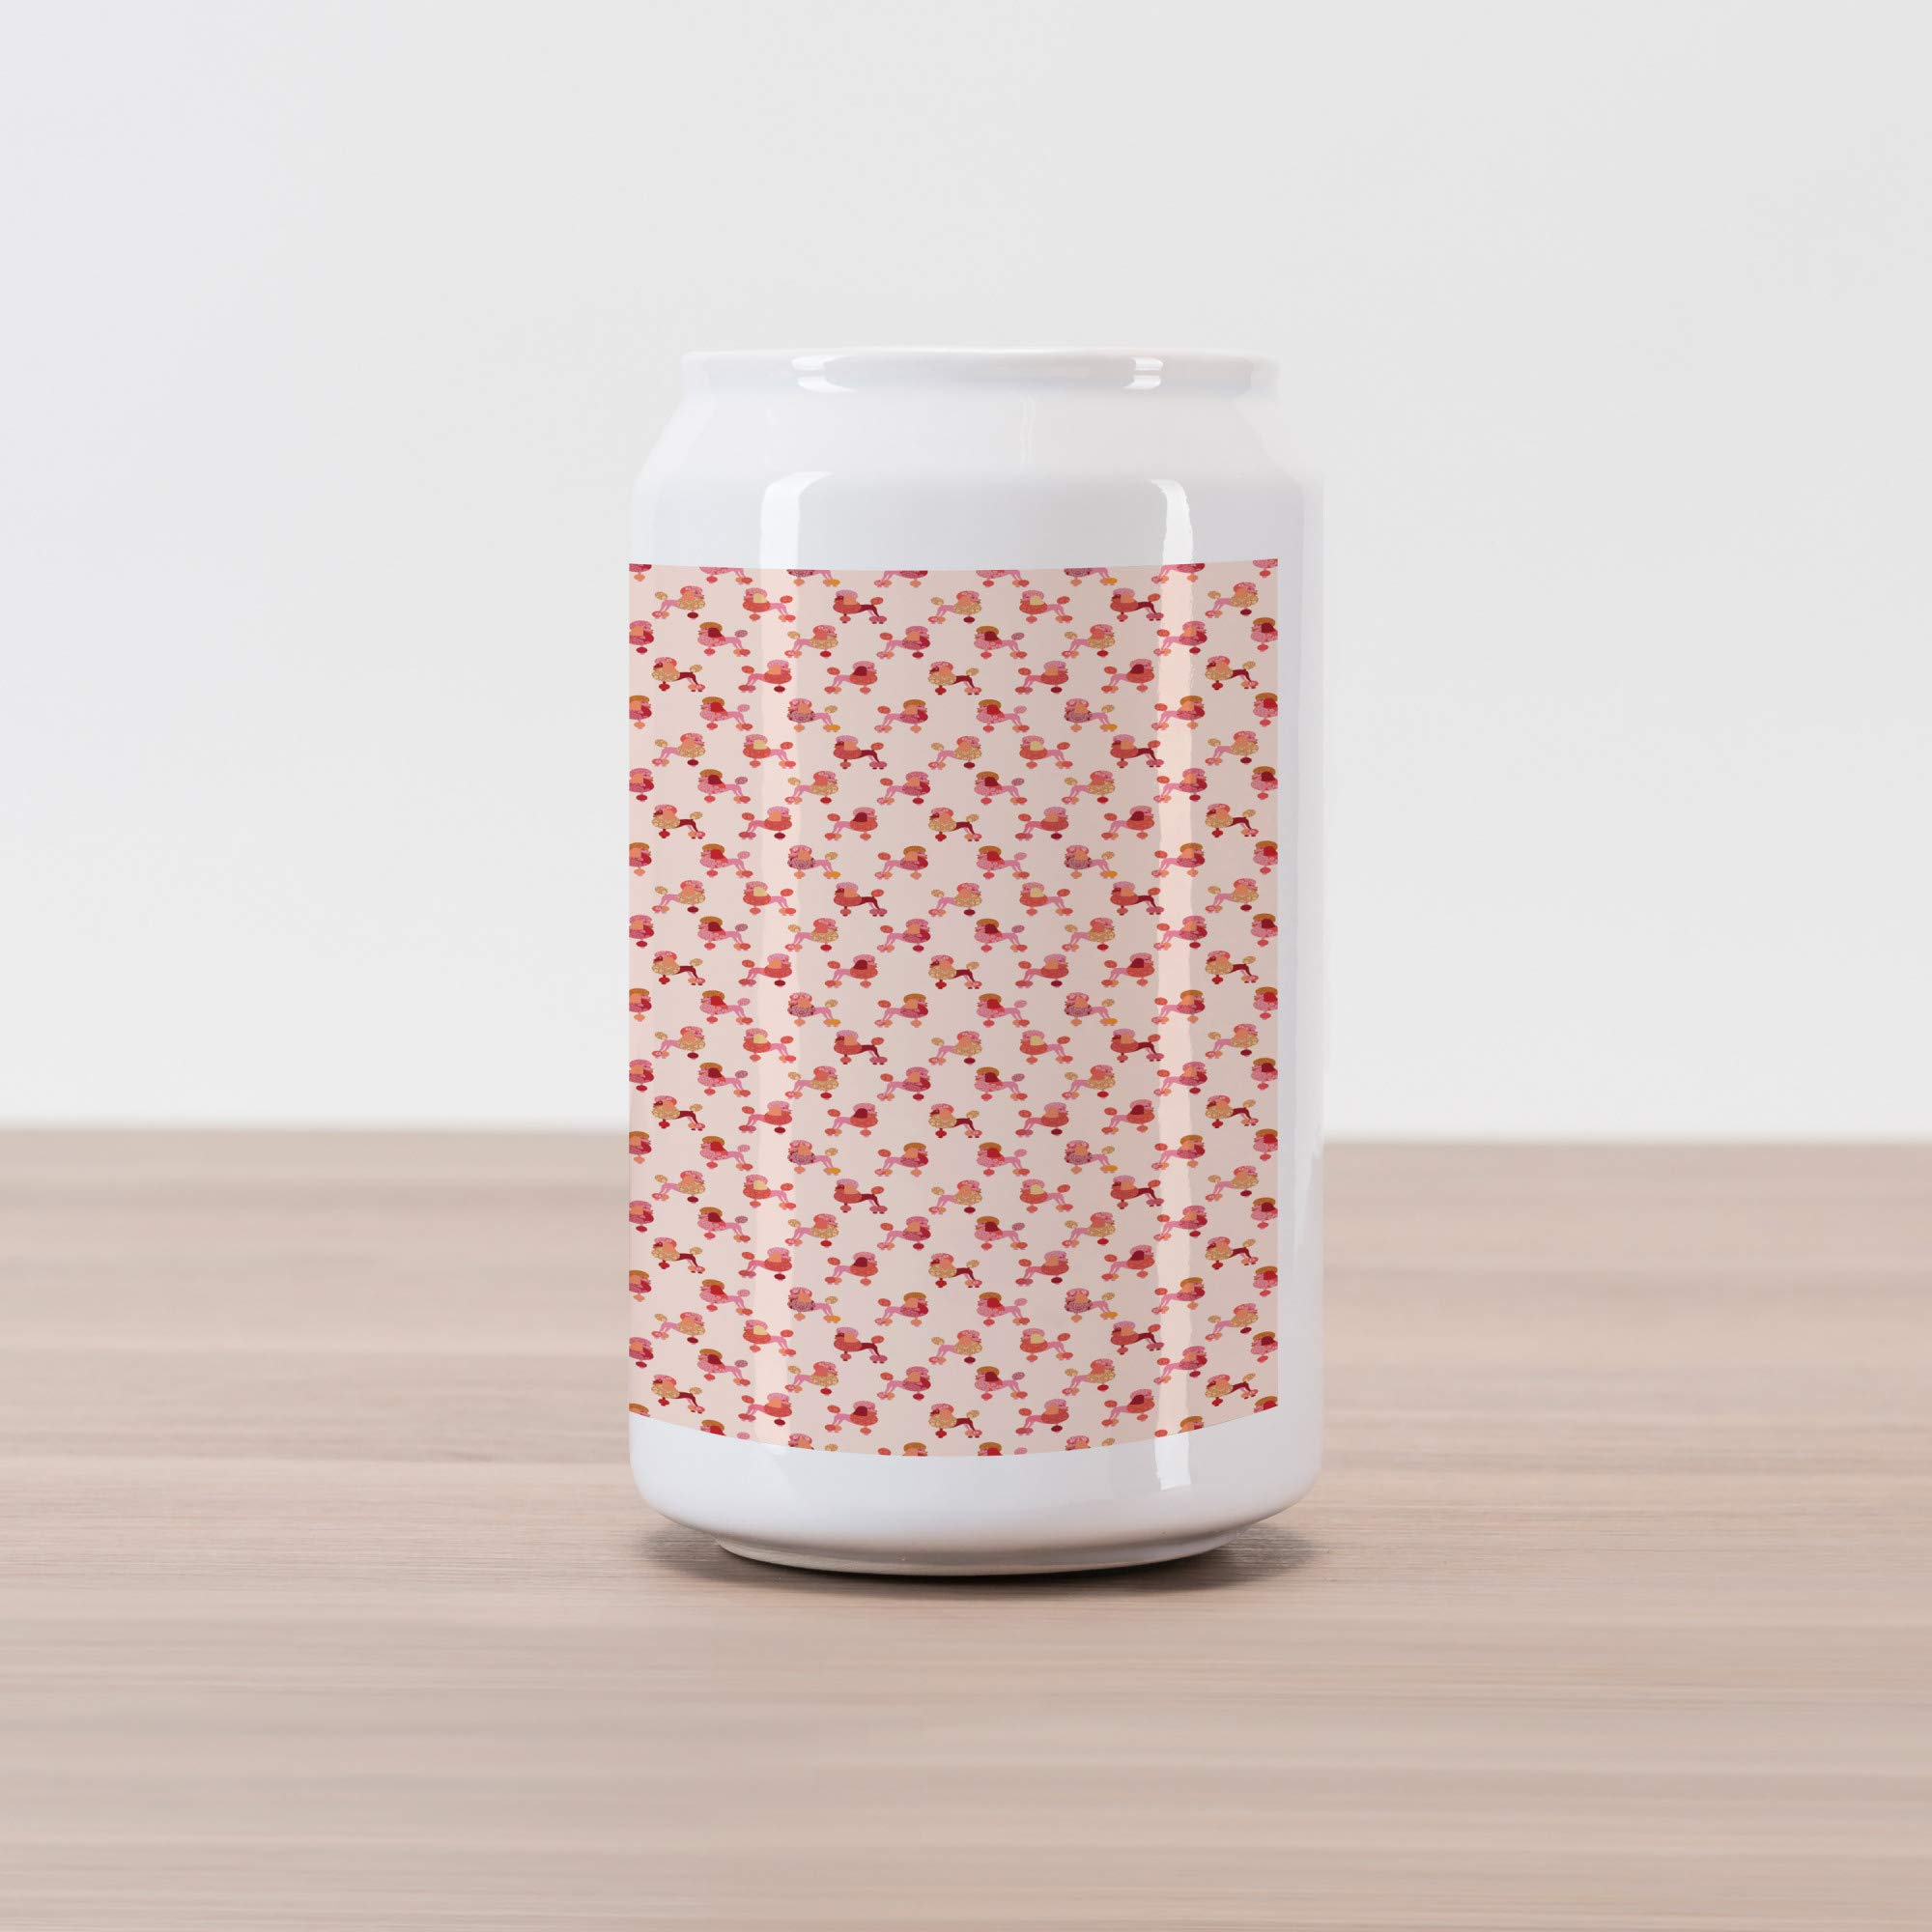 Ambesonne Dogs Cola Can Shape Piggy Bank, Feminine Pattern in Pink Shades with Poodles Ornamented with Abstract Floral Motifs, Ceramic Cola Shaped Coin Box Money Bank for Cash Saving, Multicolor